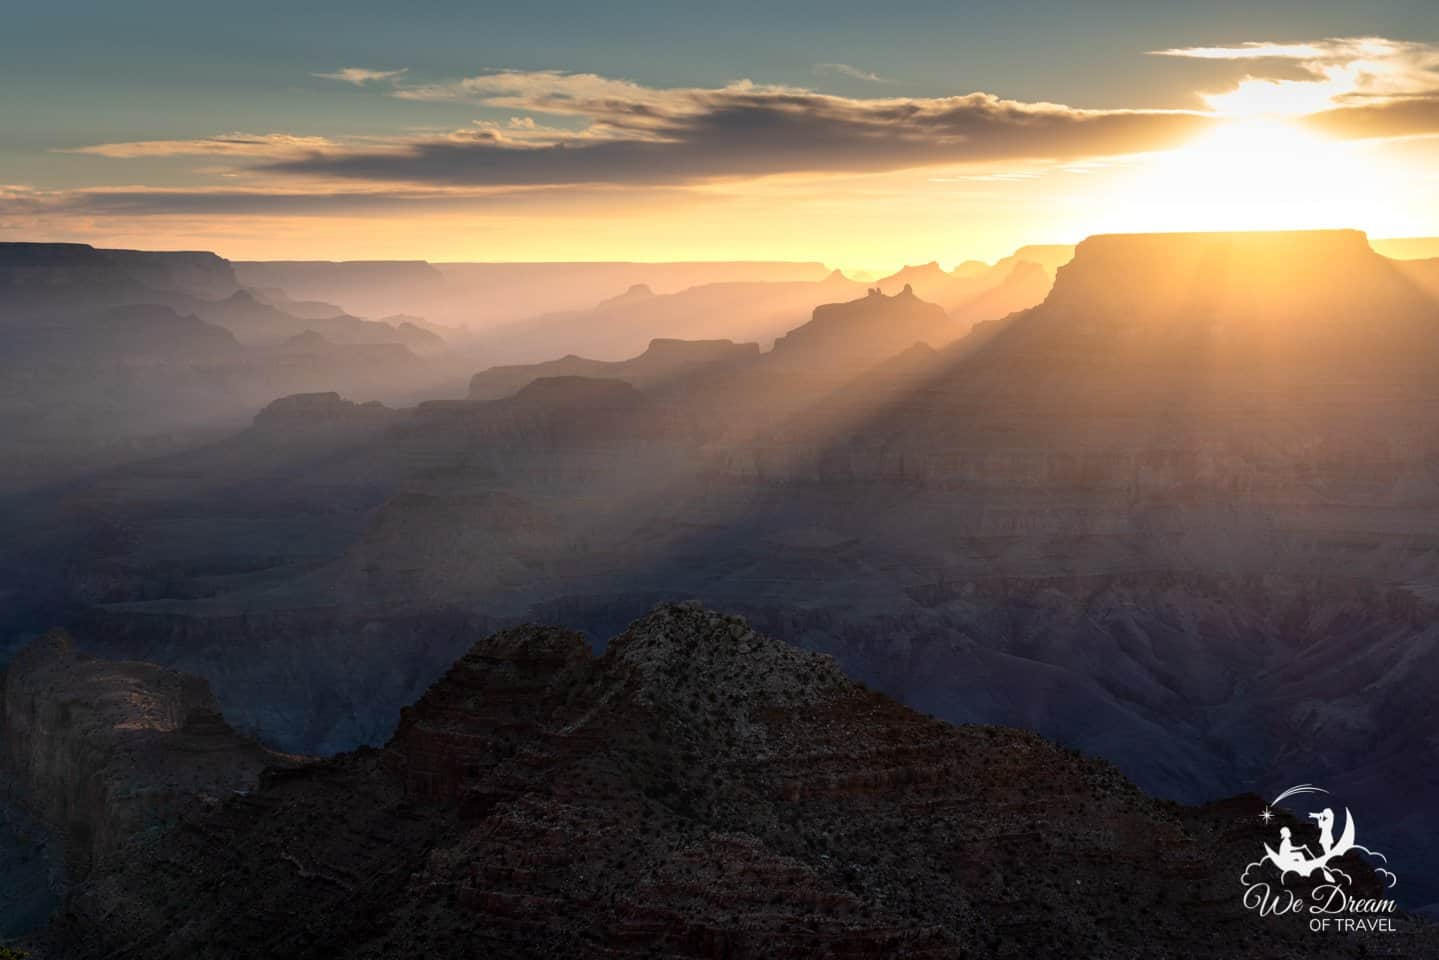 Amazing sunset to end a day at Grand Canyon.